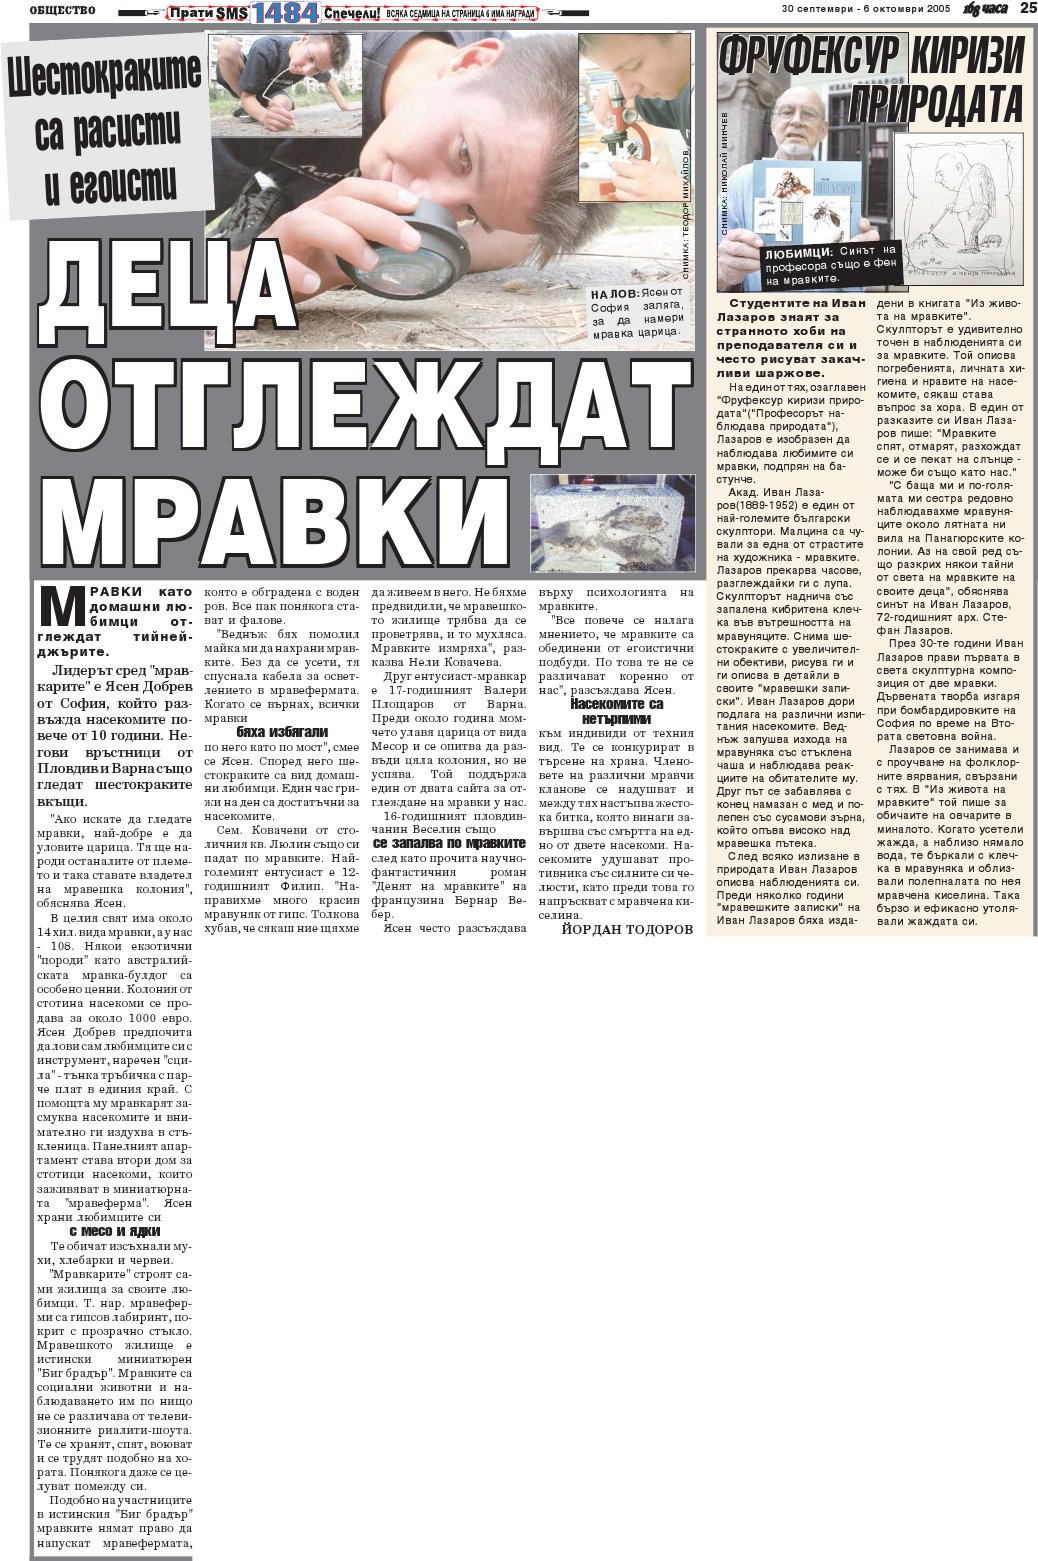 Article in the newspaper 168 hours (168 часа), 30/09/2005